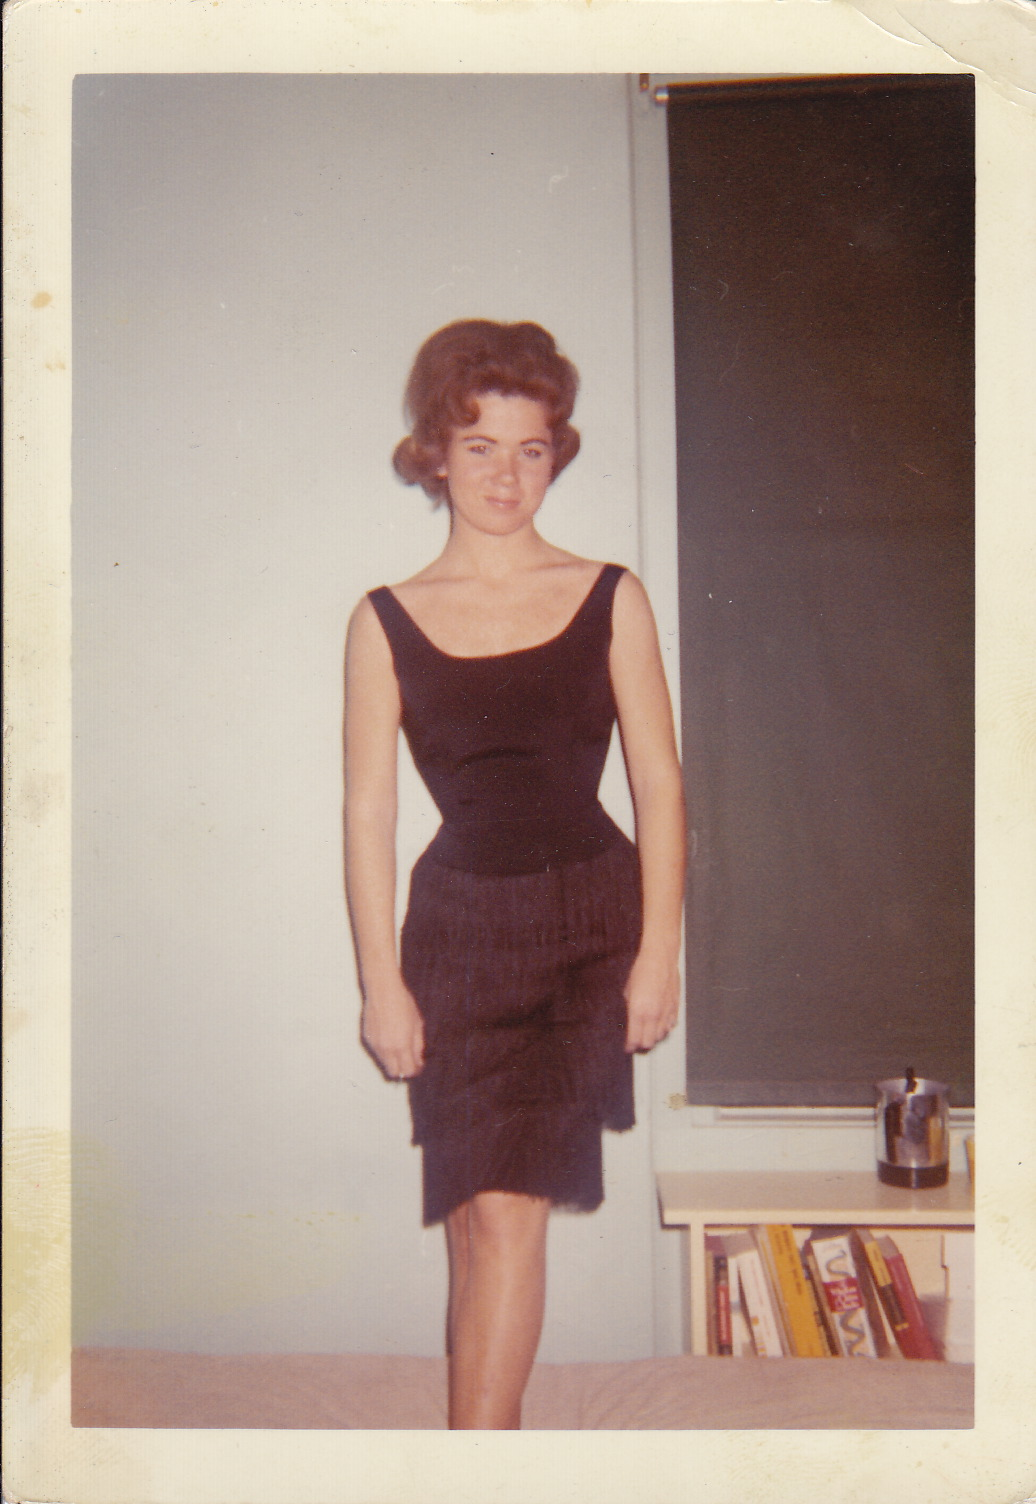 Mother's LBD in college.